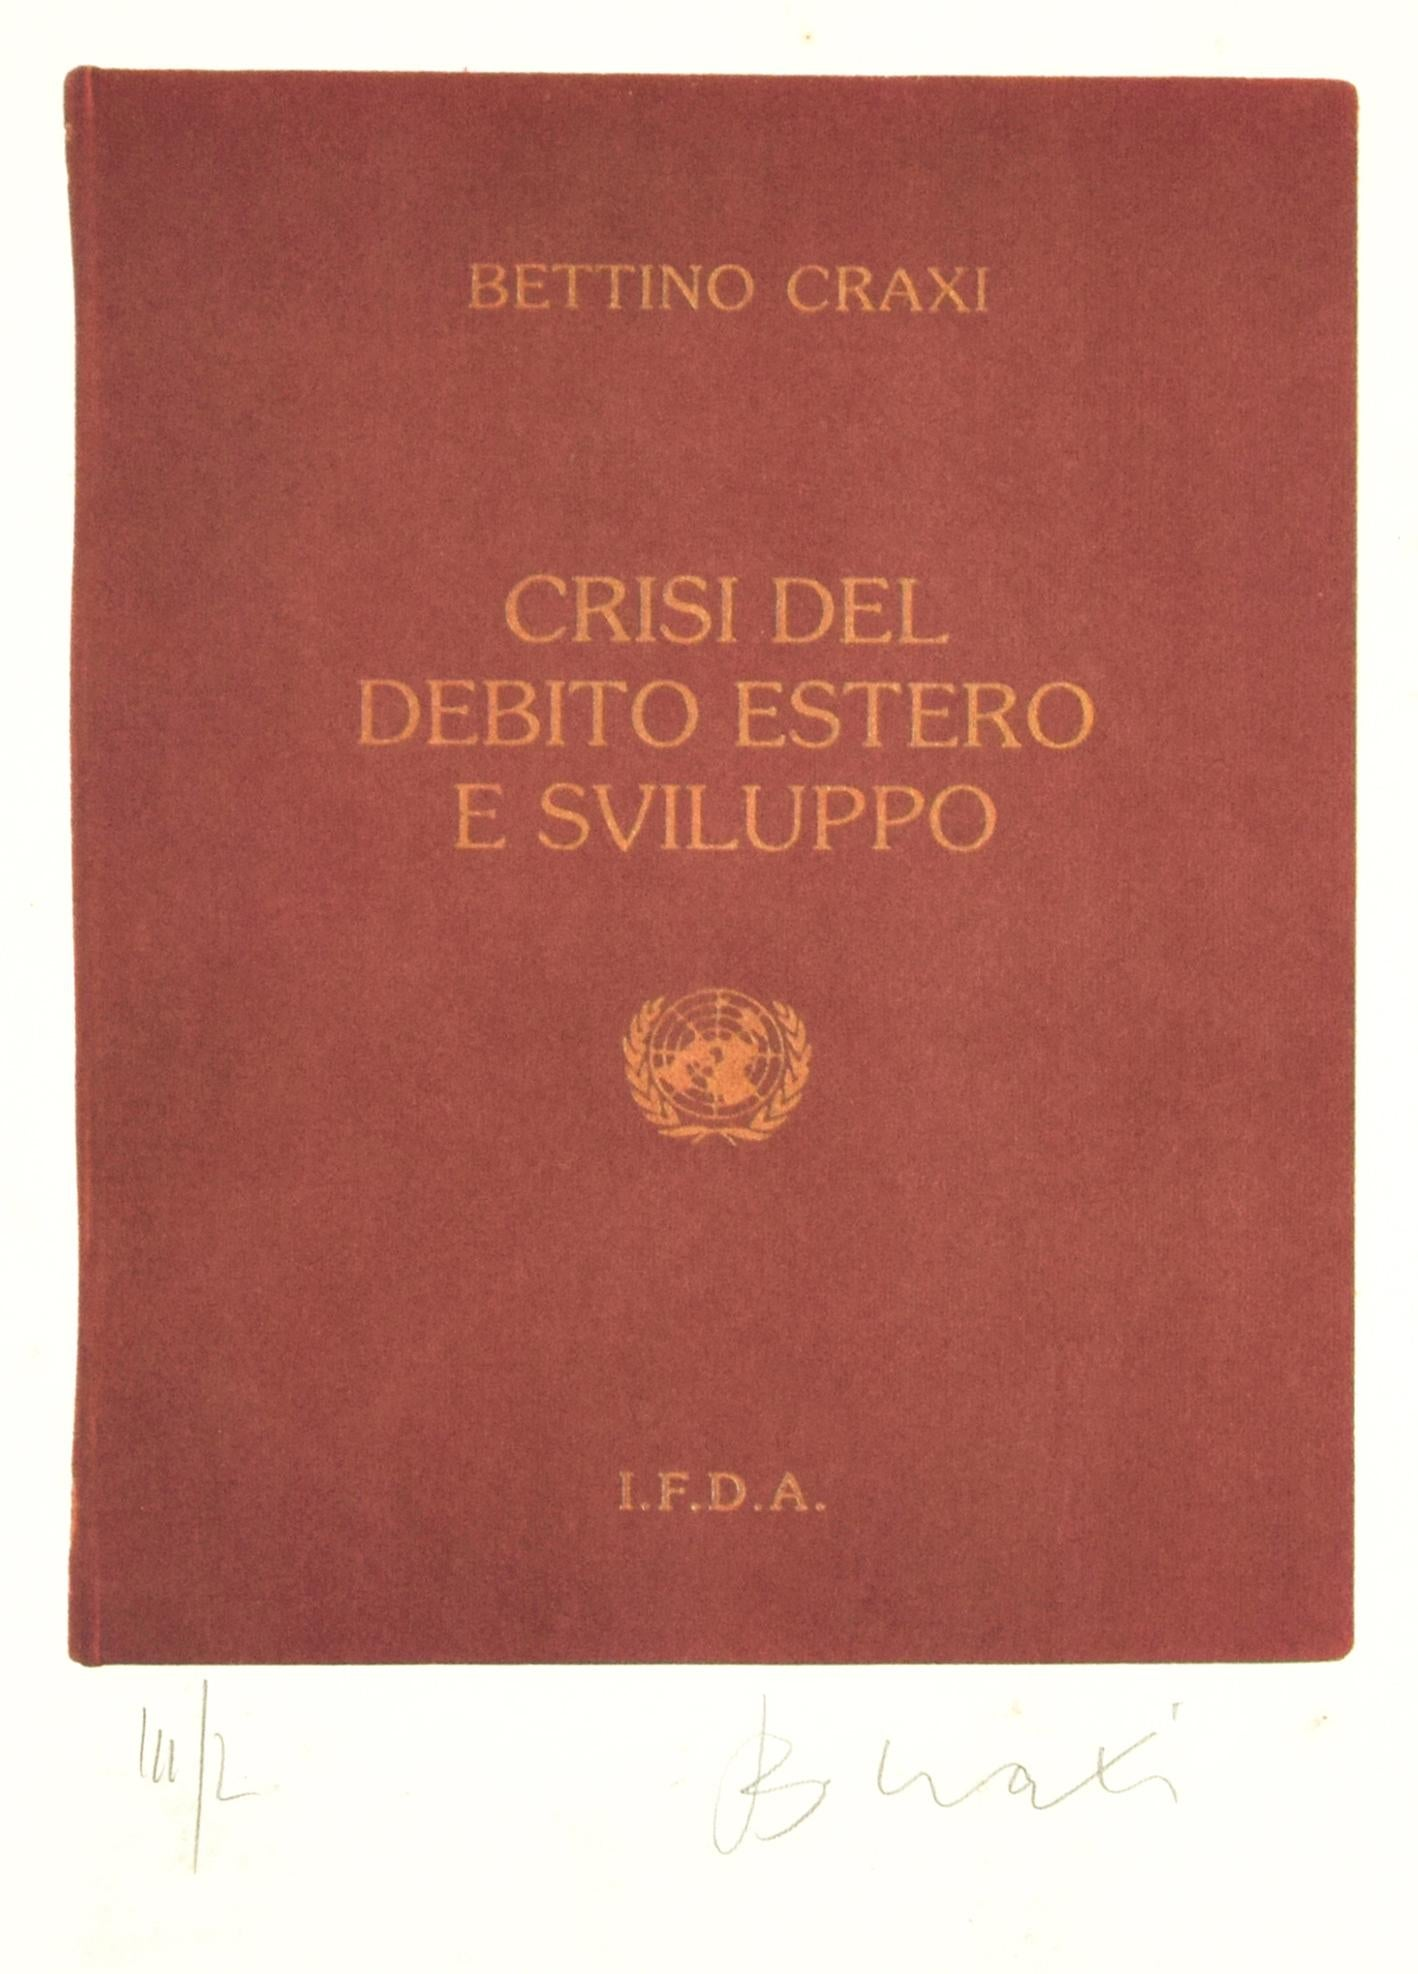 Crisis of the Foreign Debt and Developmen - Screen Print by Bettino Craxi - 1994